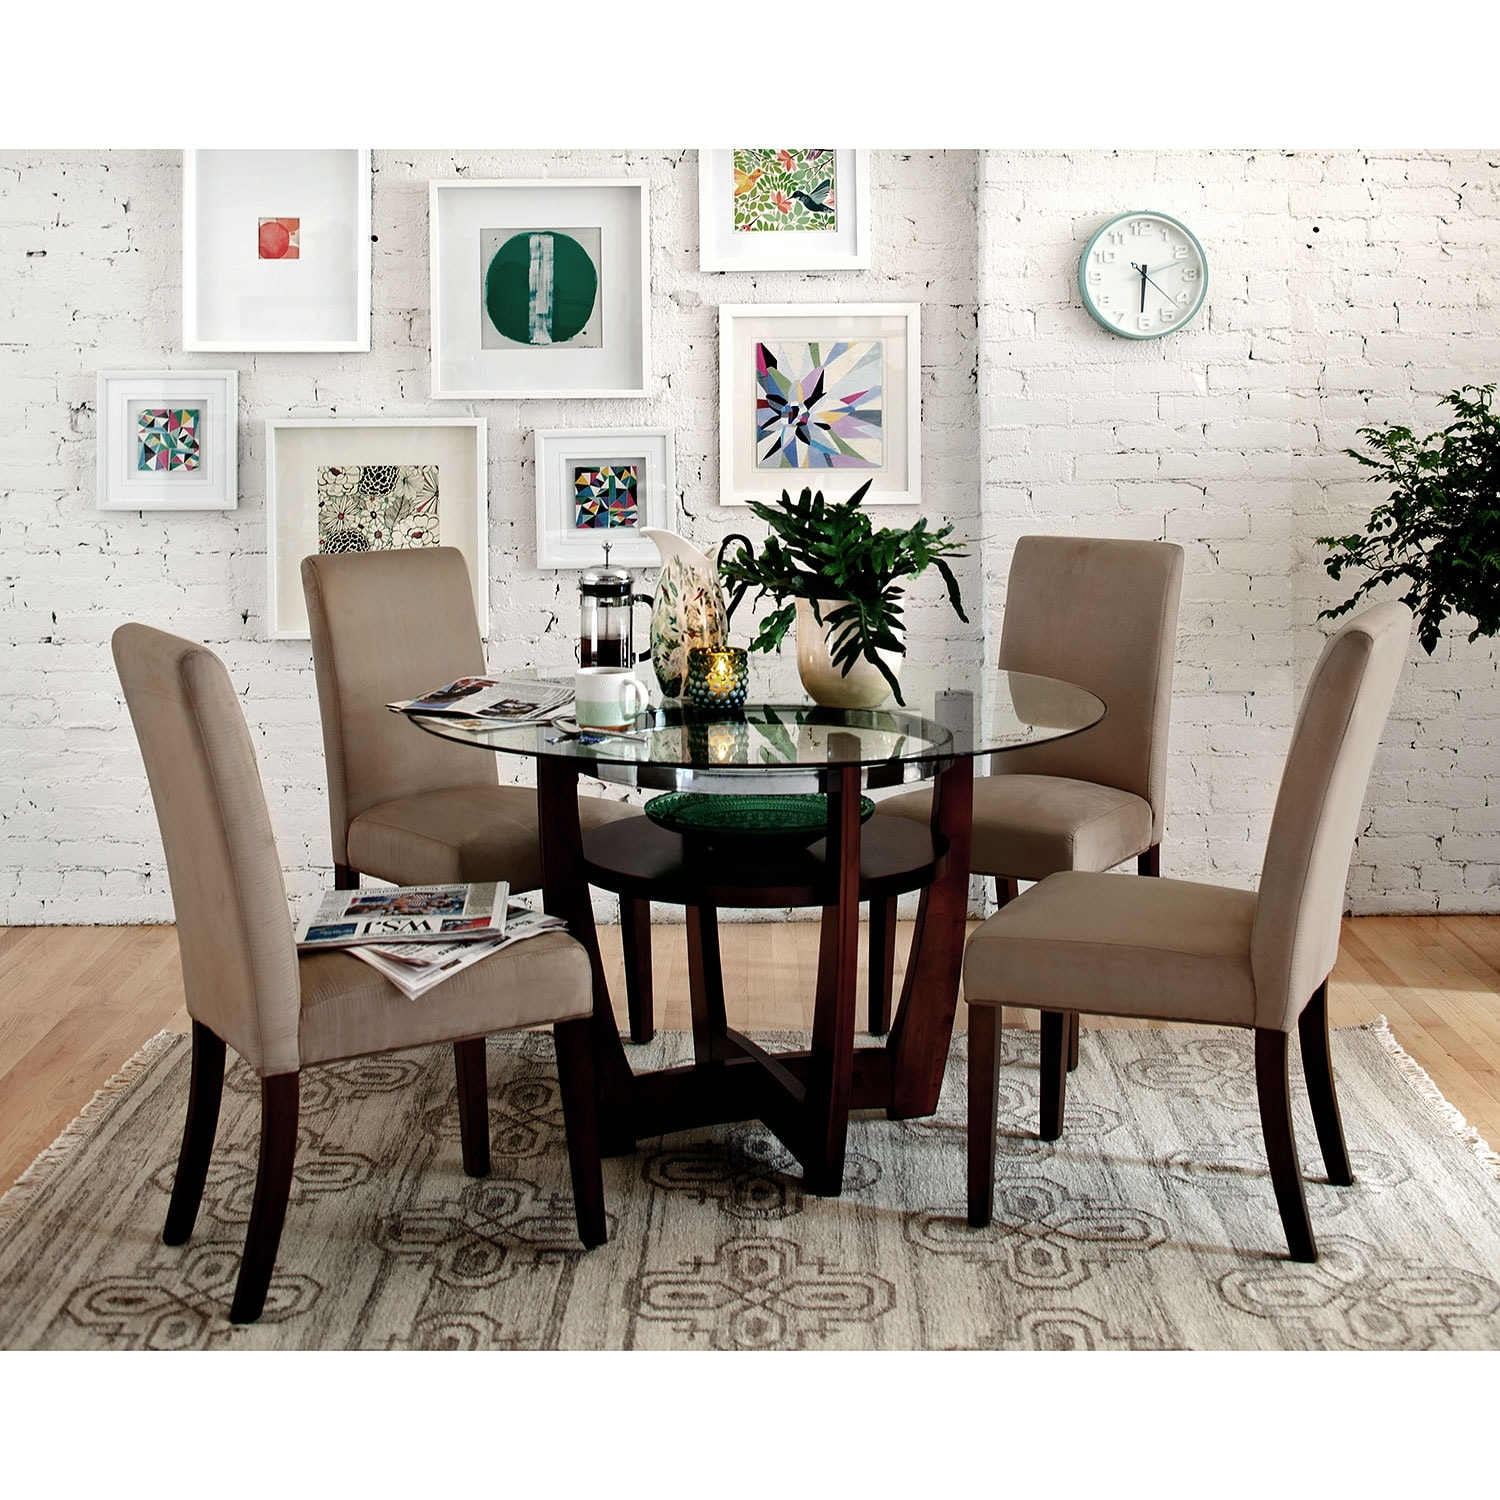 4 Chairs In Dining Room: Alcove Dinette With 4 Side Chairs - Beige